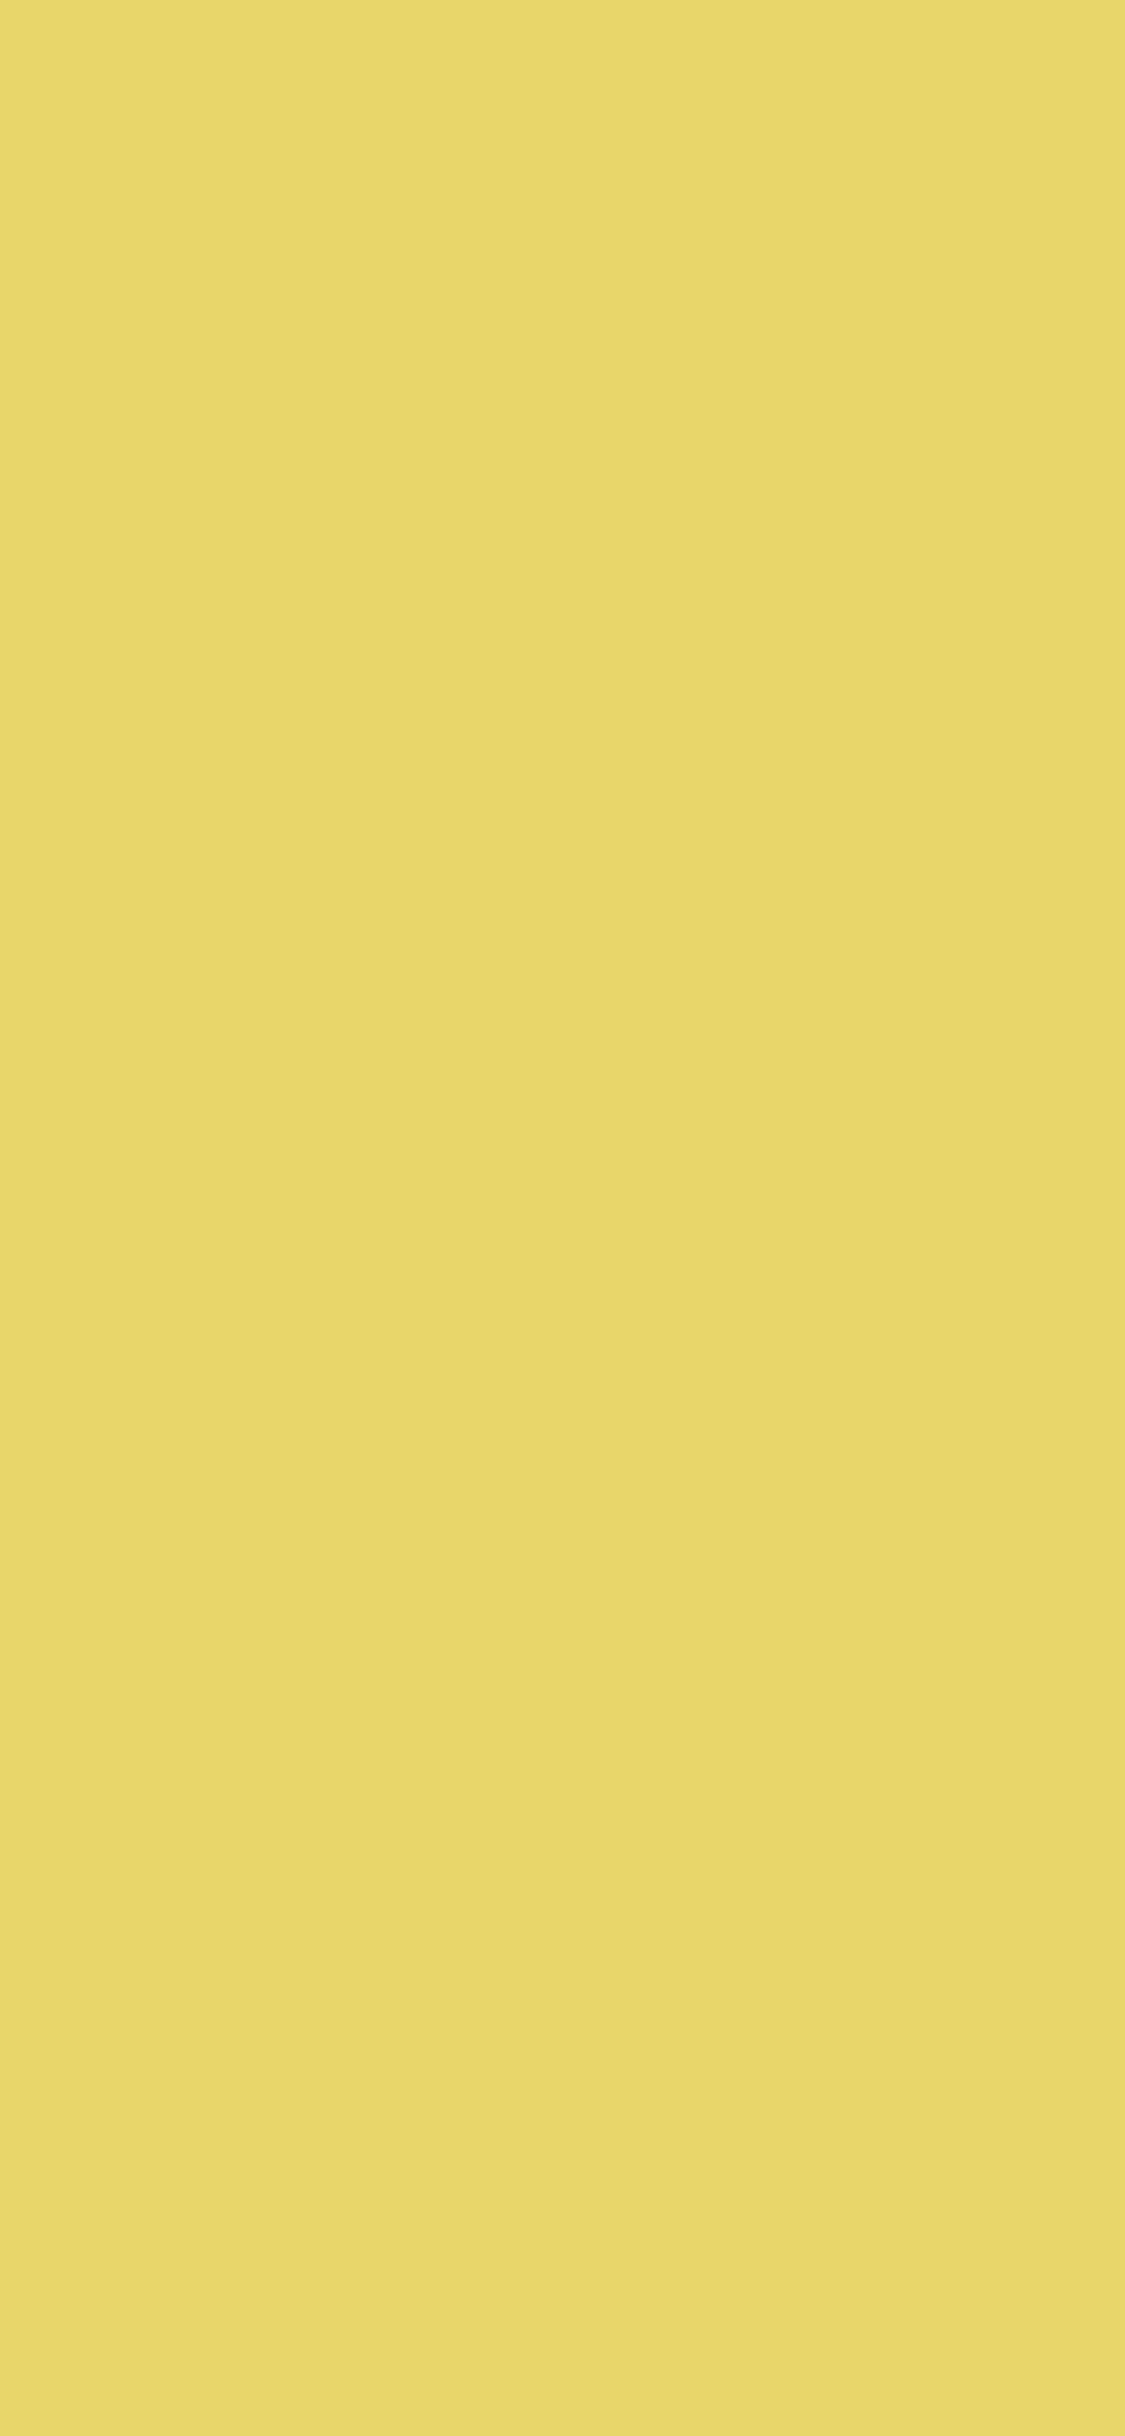 1125x2436 Hansa Yellow Solid Color Background